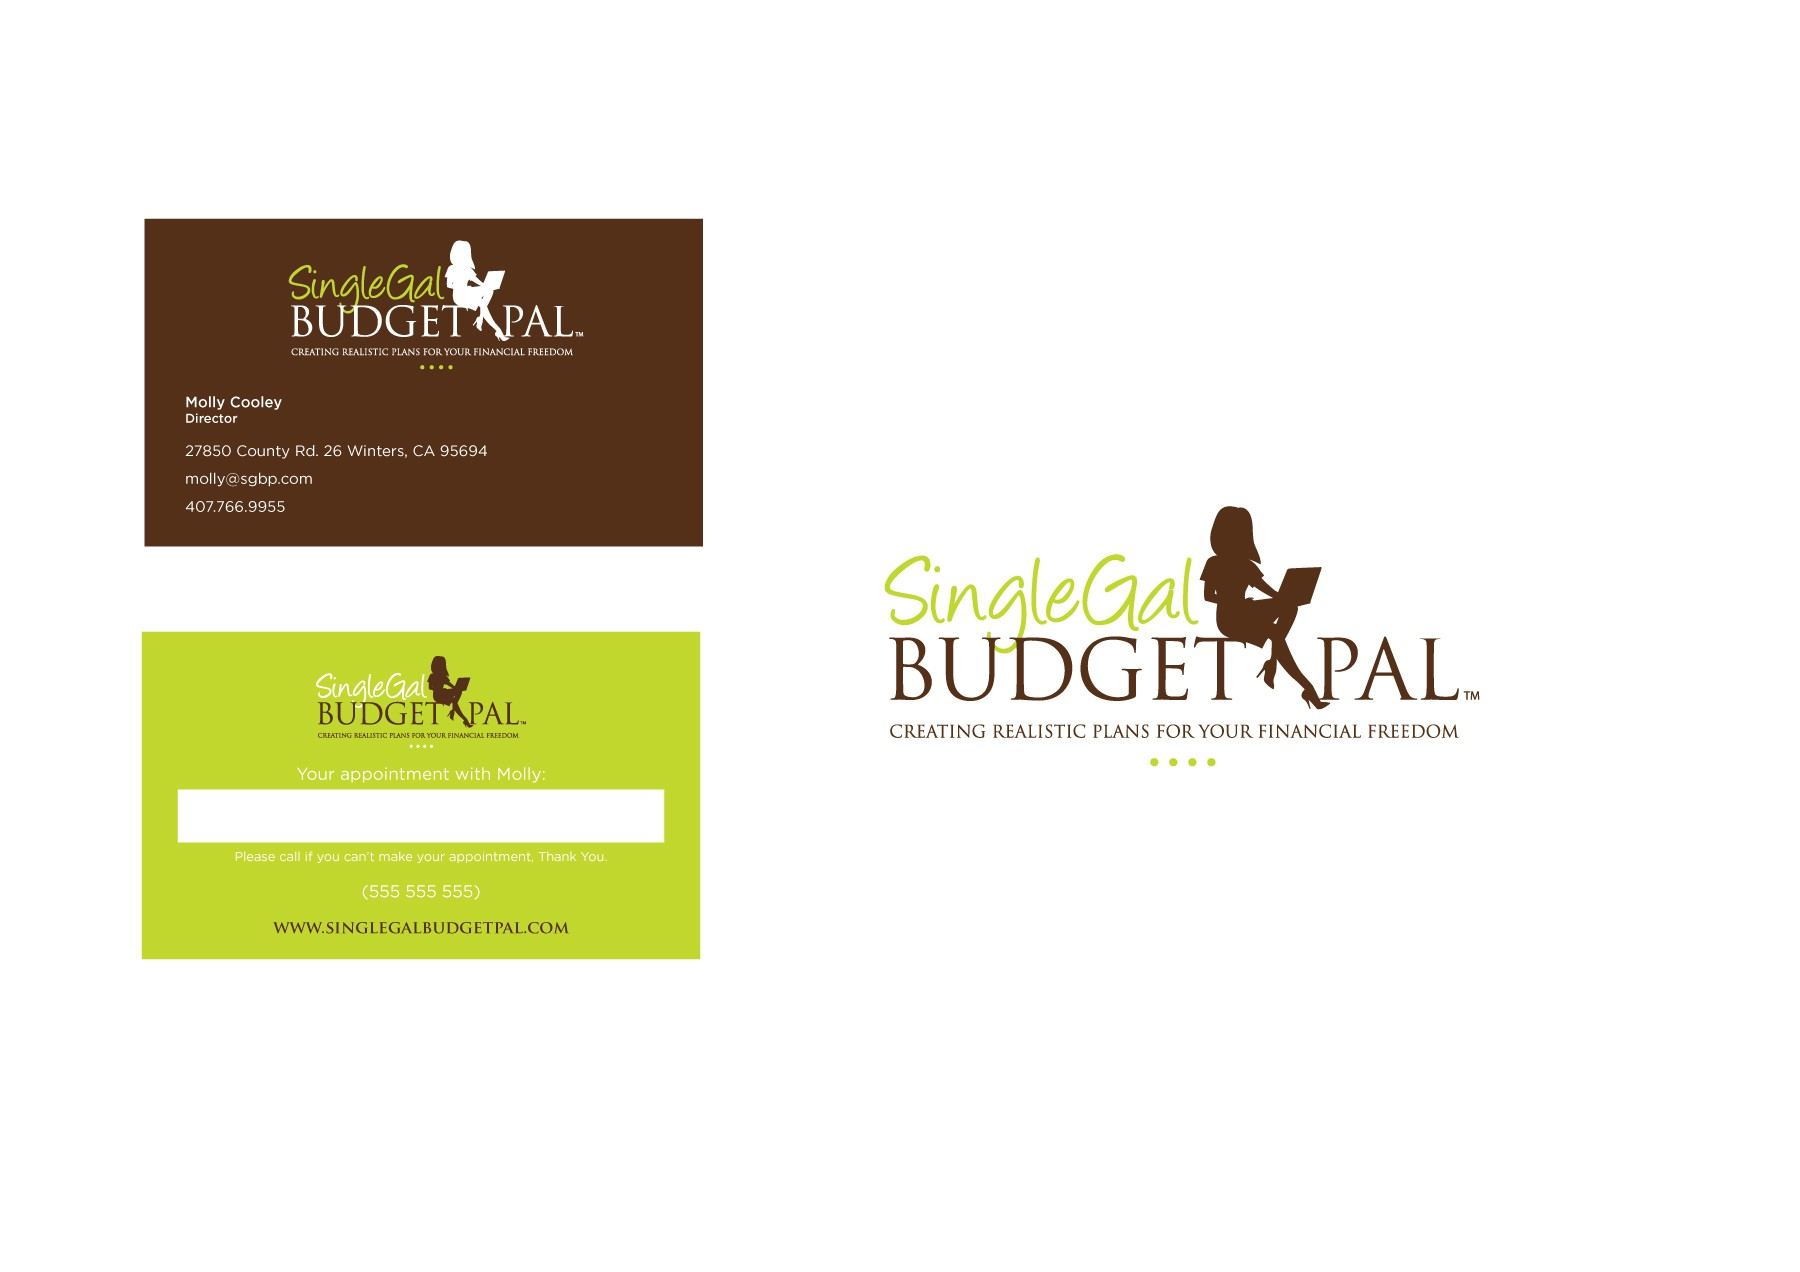 New logo wanted for Single Gal Budget Pal